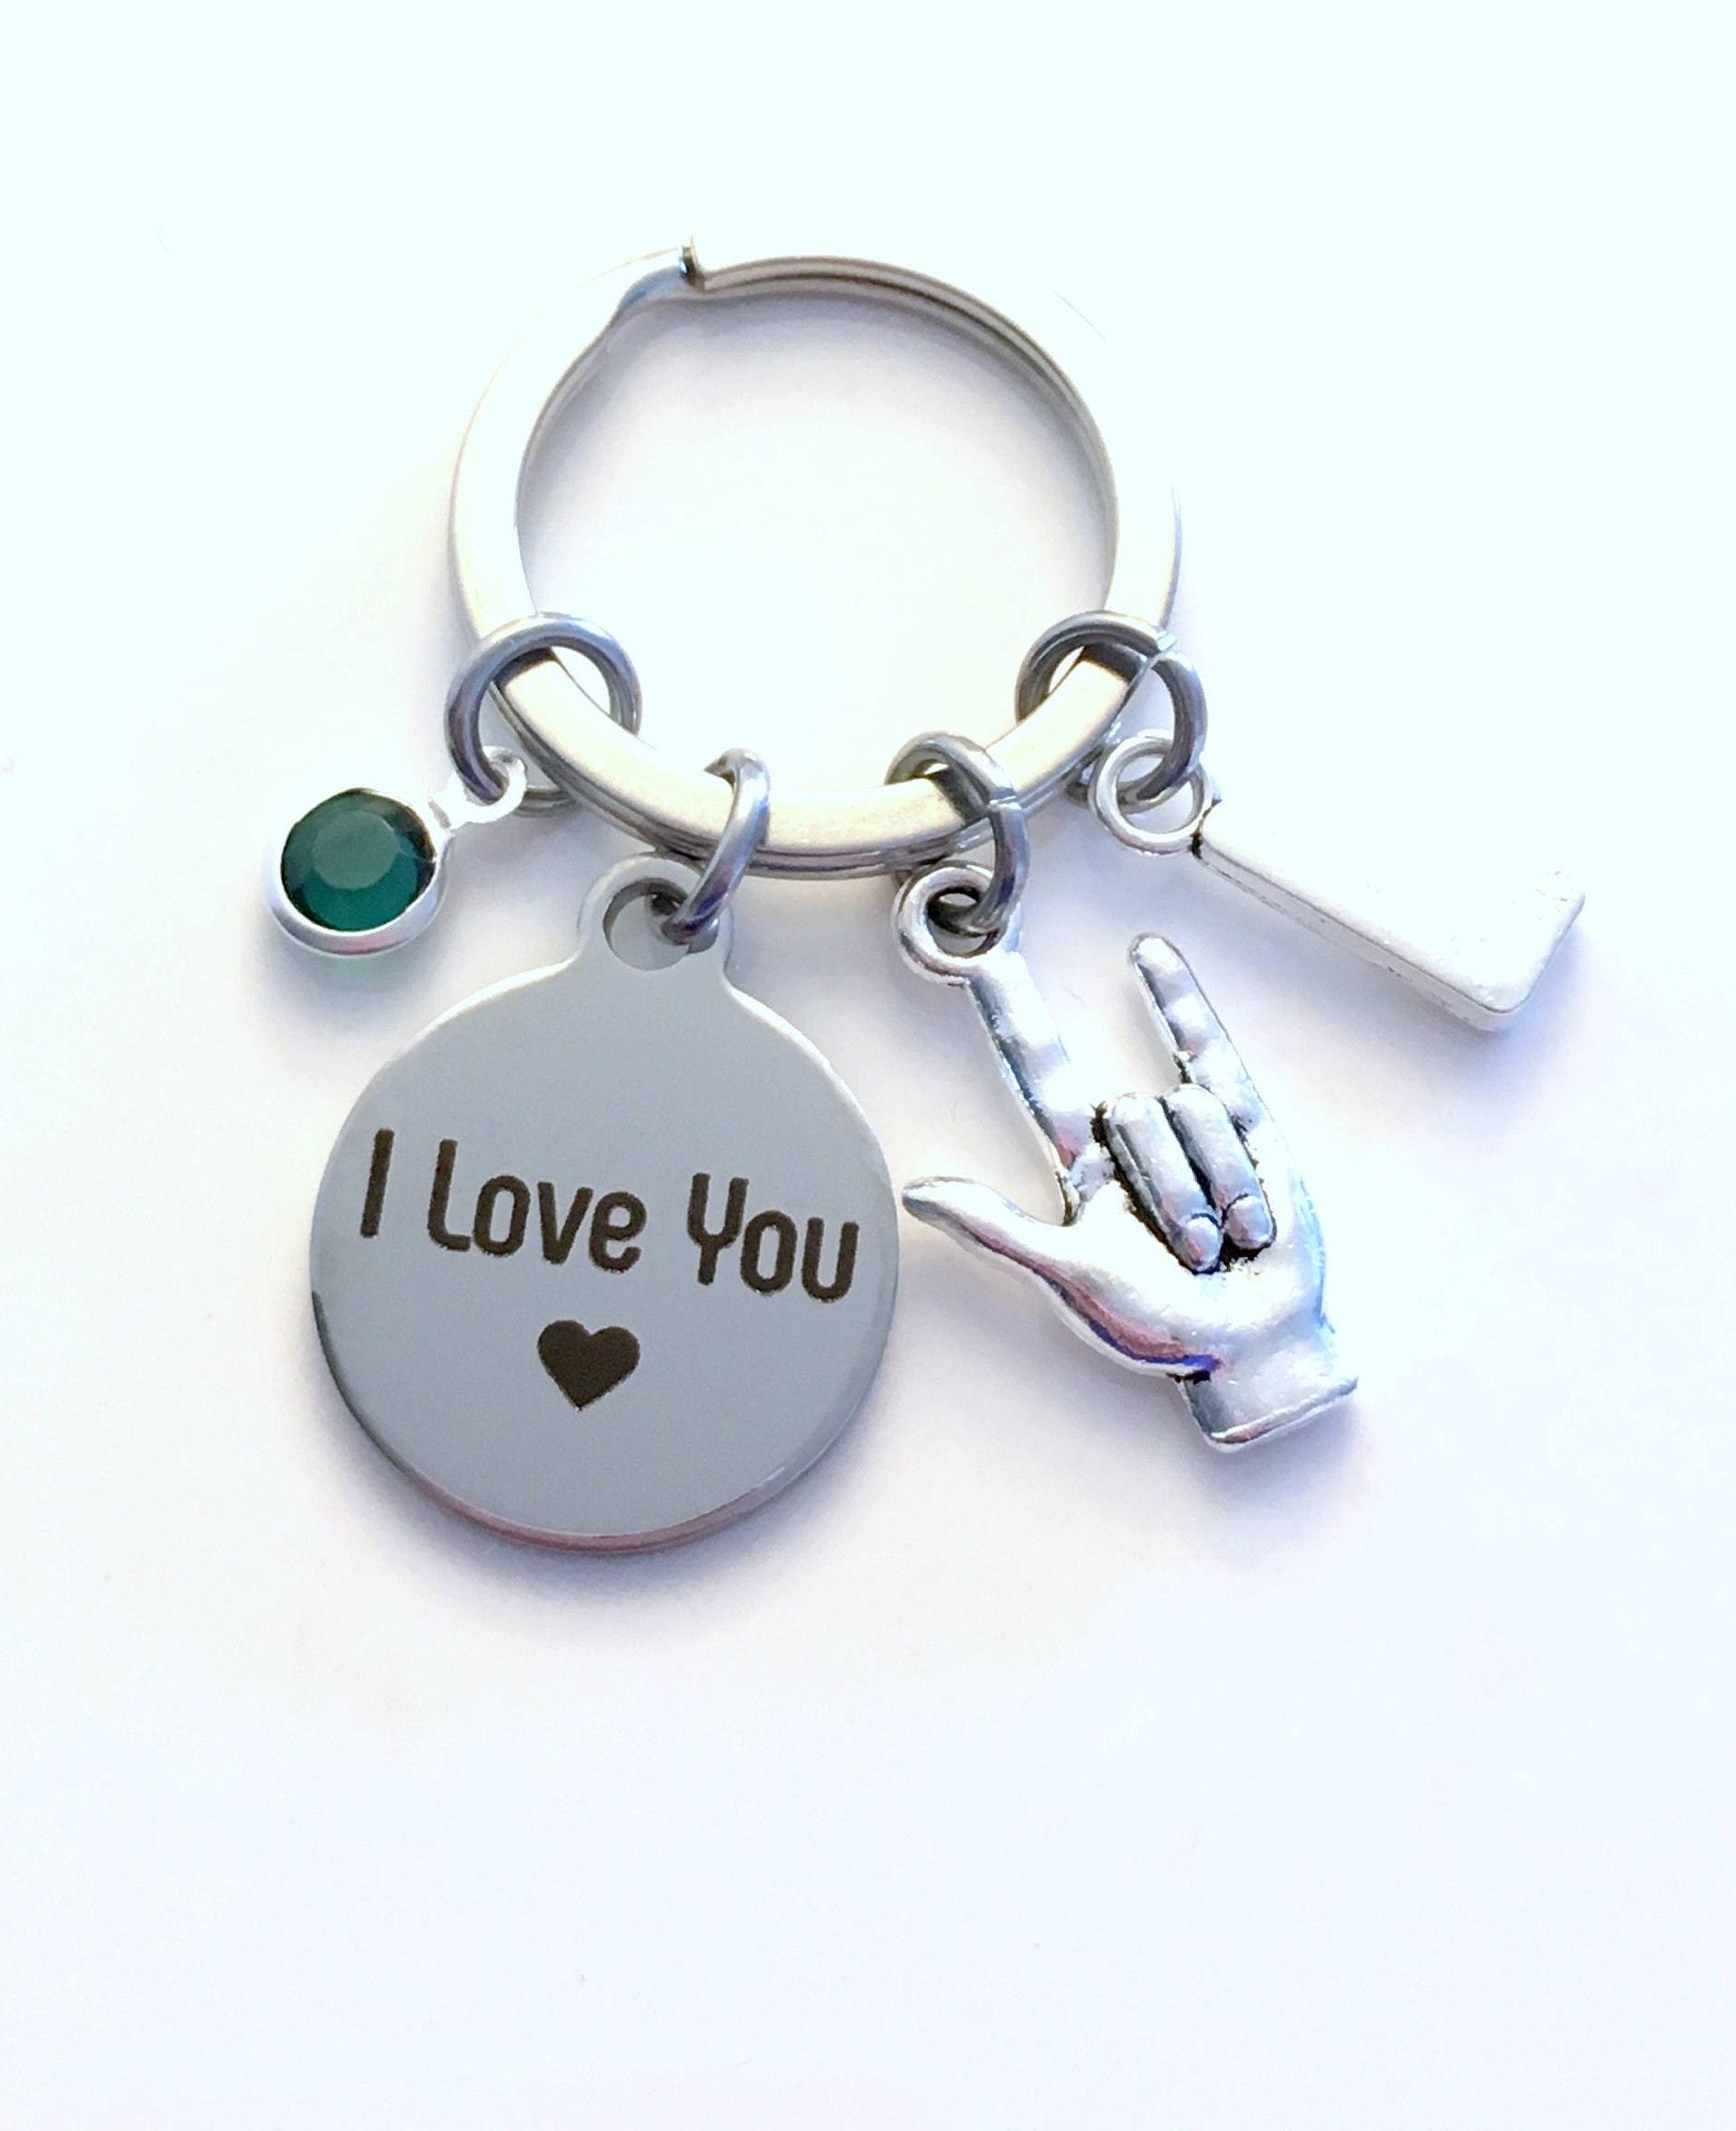 I Love You Keychain Gift For Daughter Sign Language Key Chain Hand